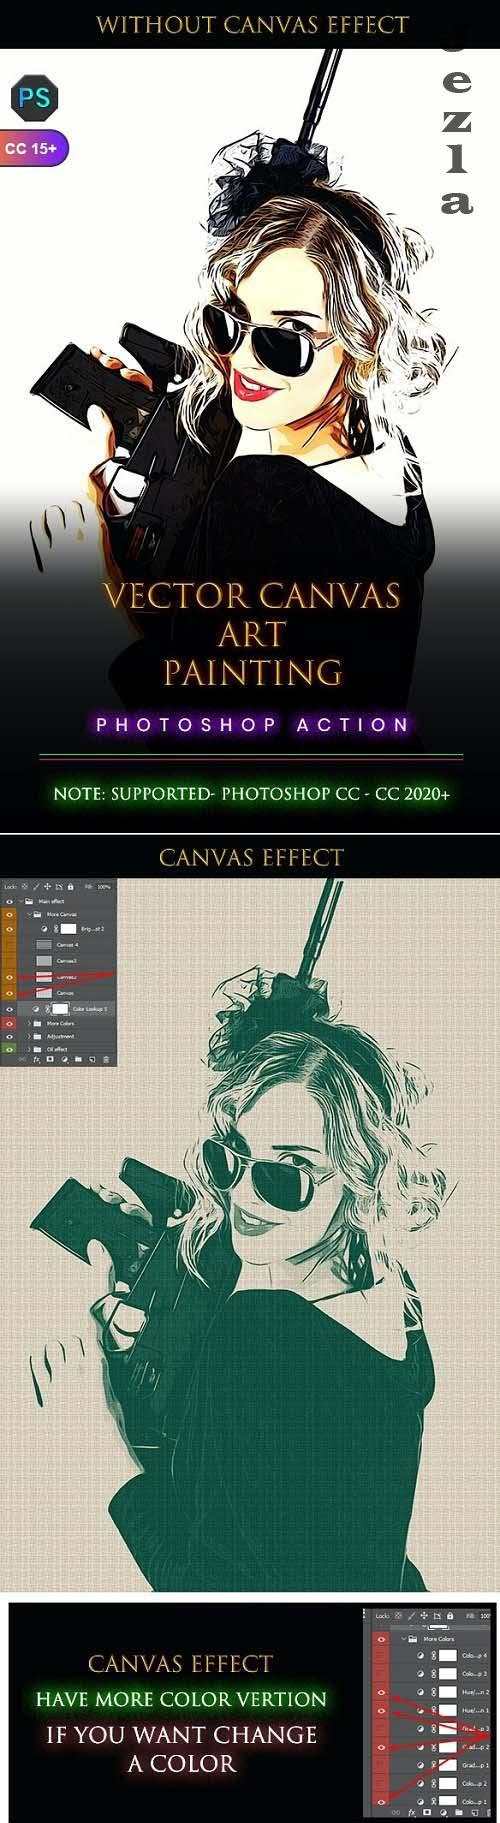 Vector Canvas Art Painting Photoshop Action - 33762445